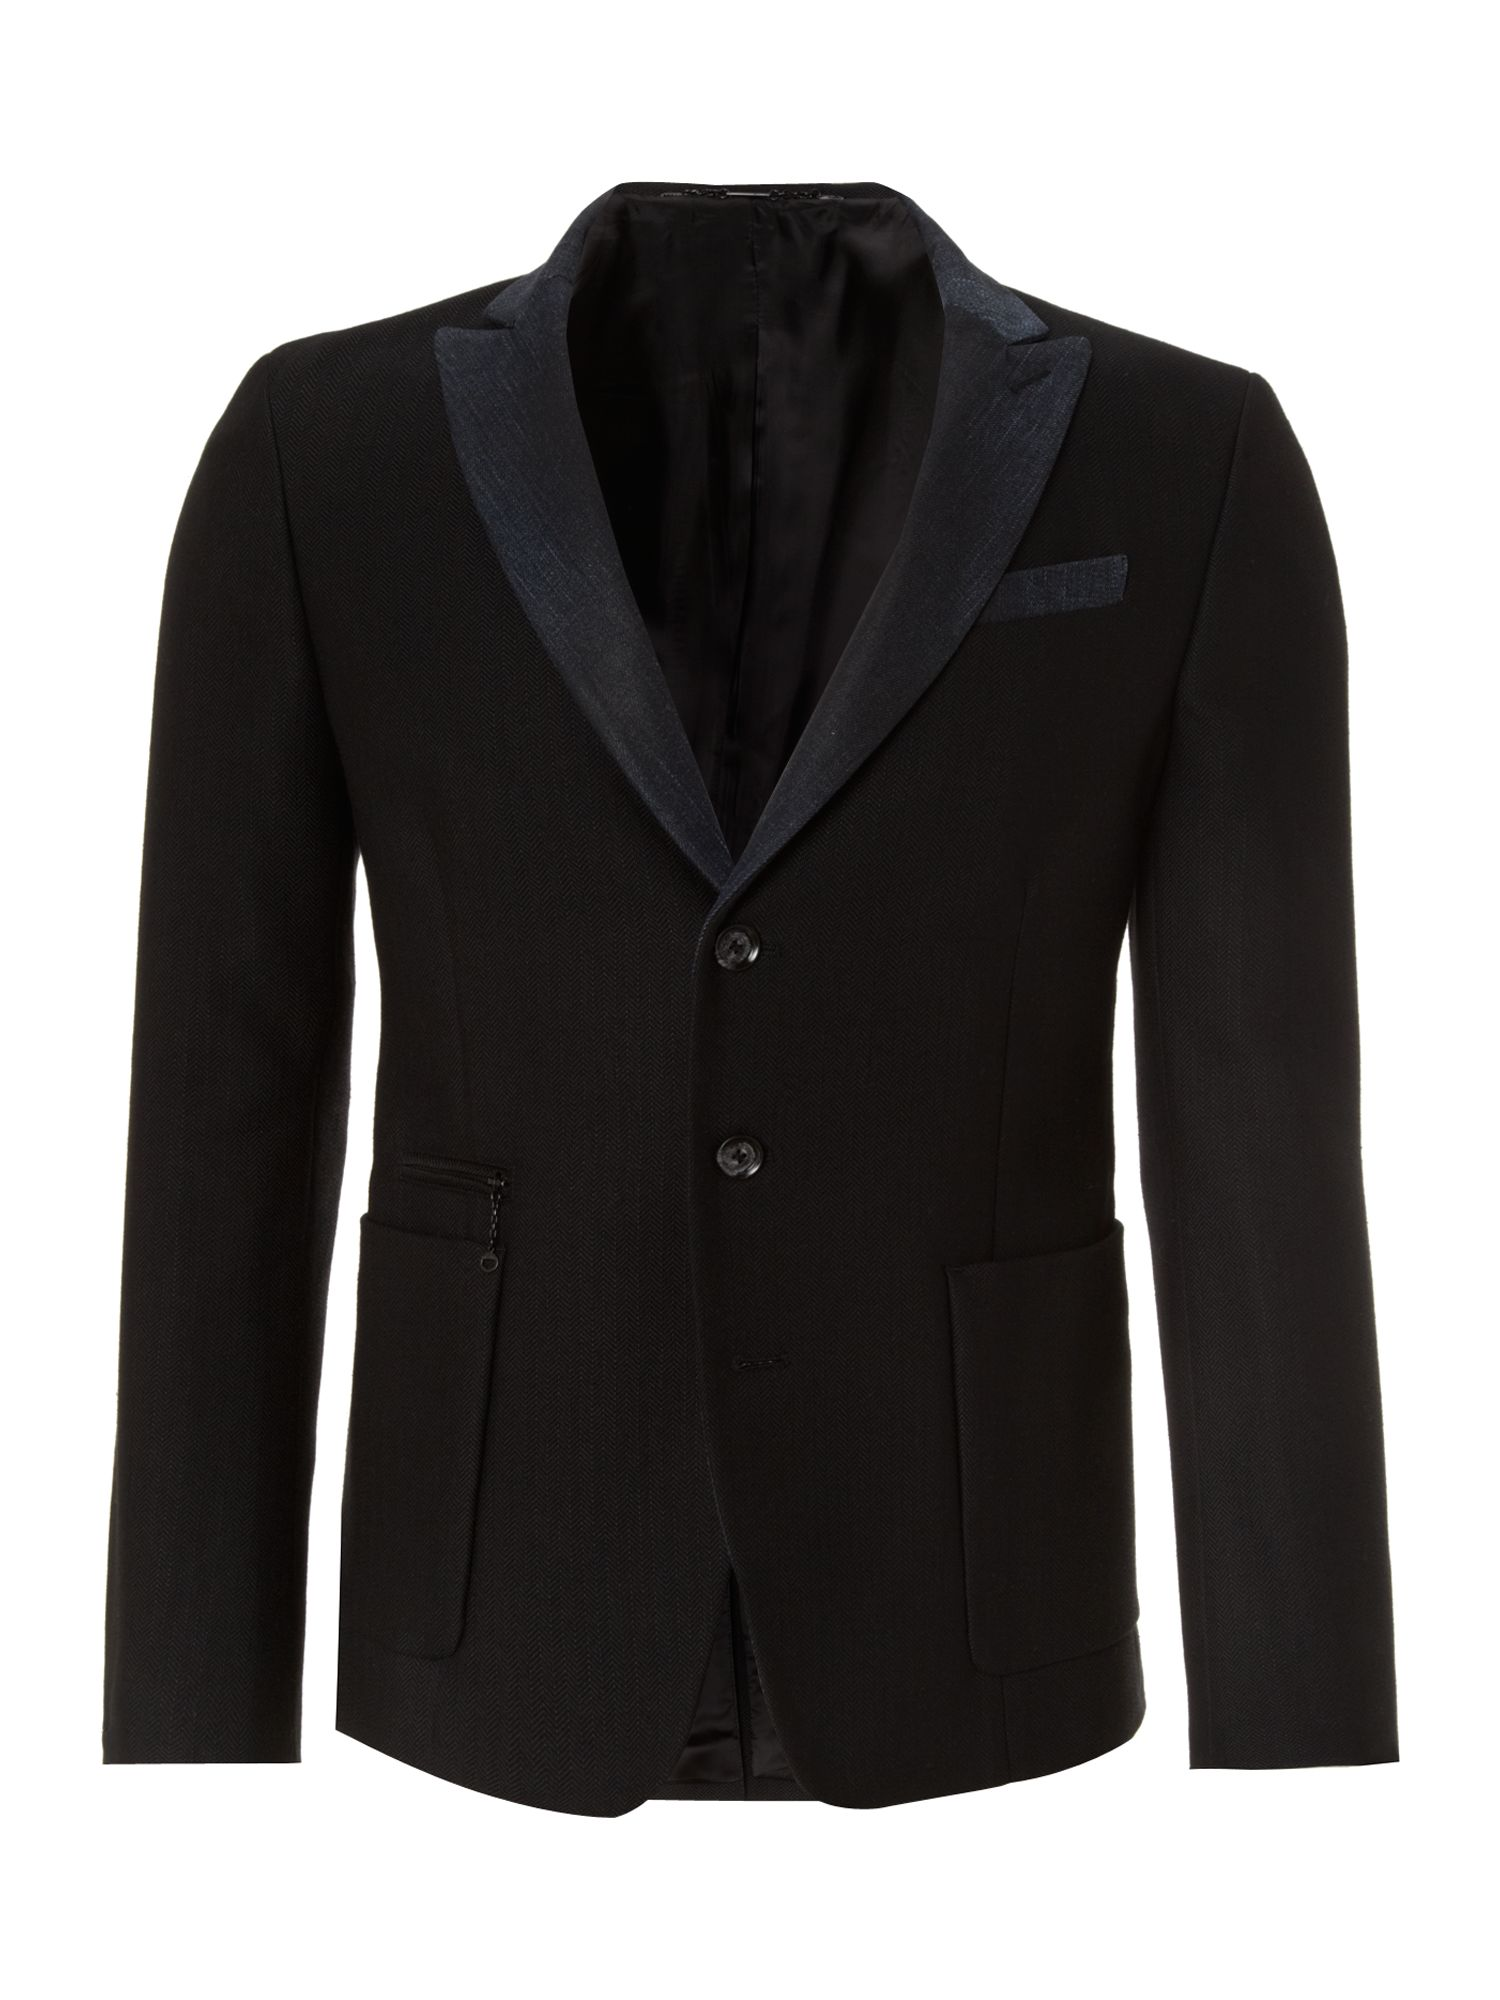 with contrasting lapel and pocket